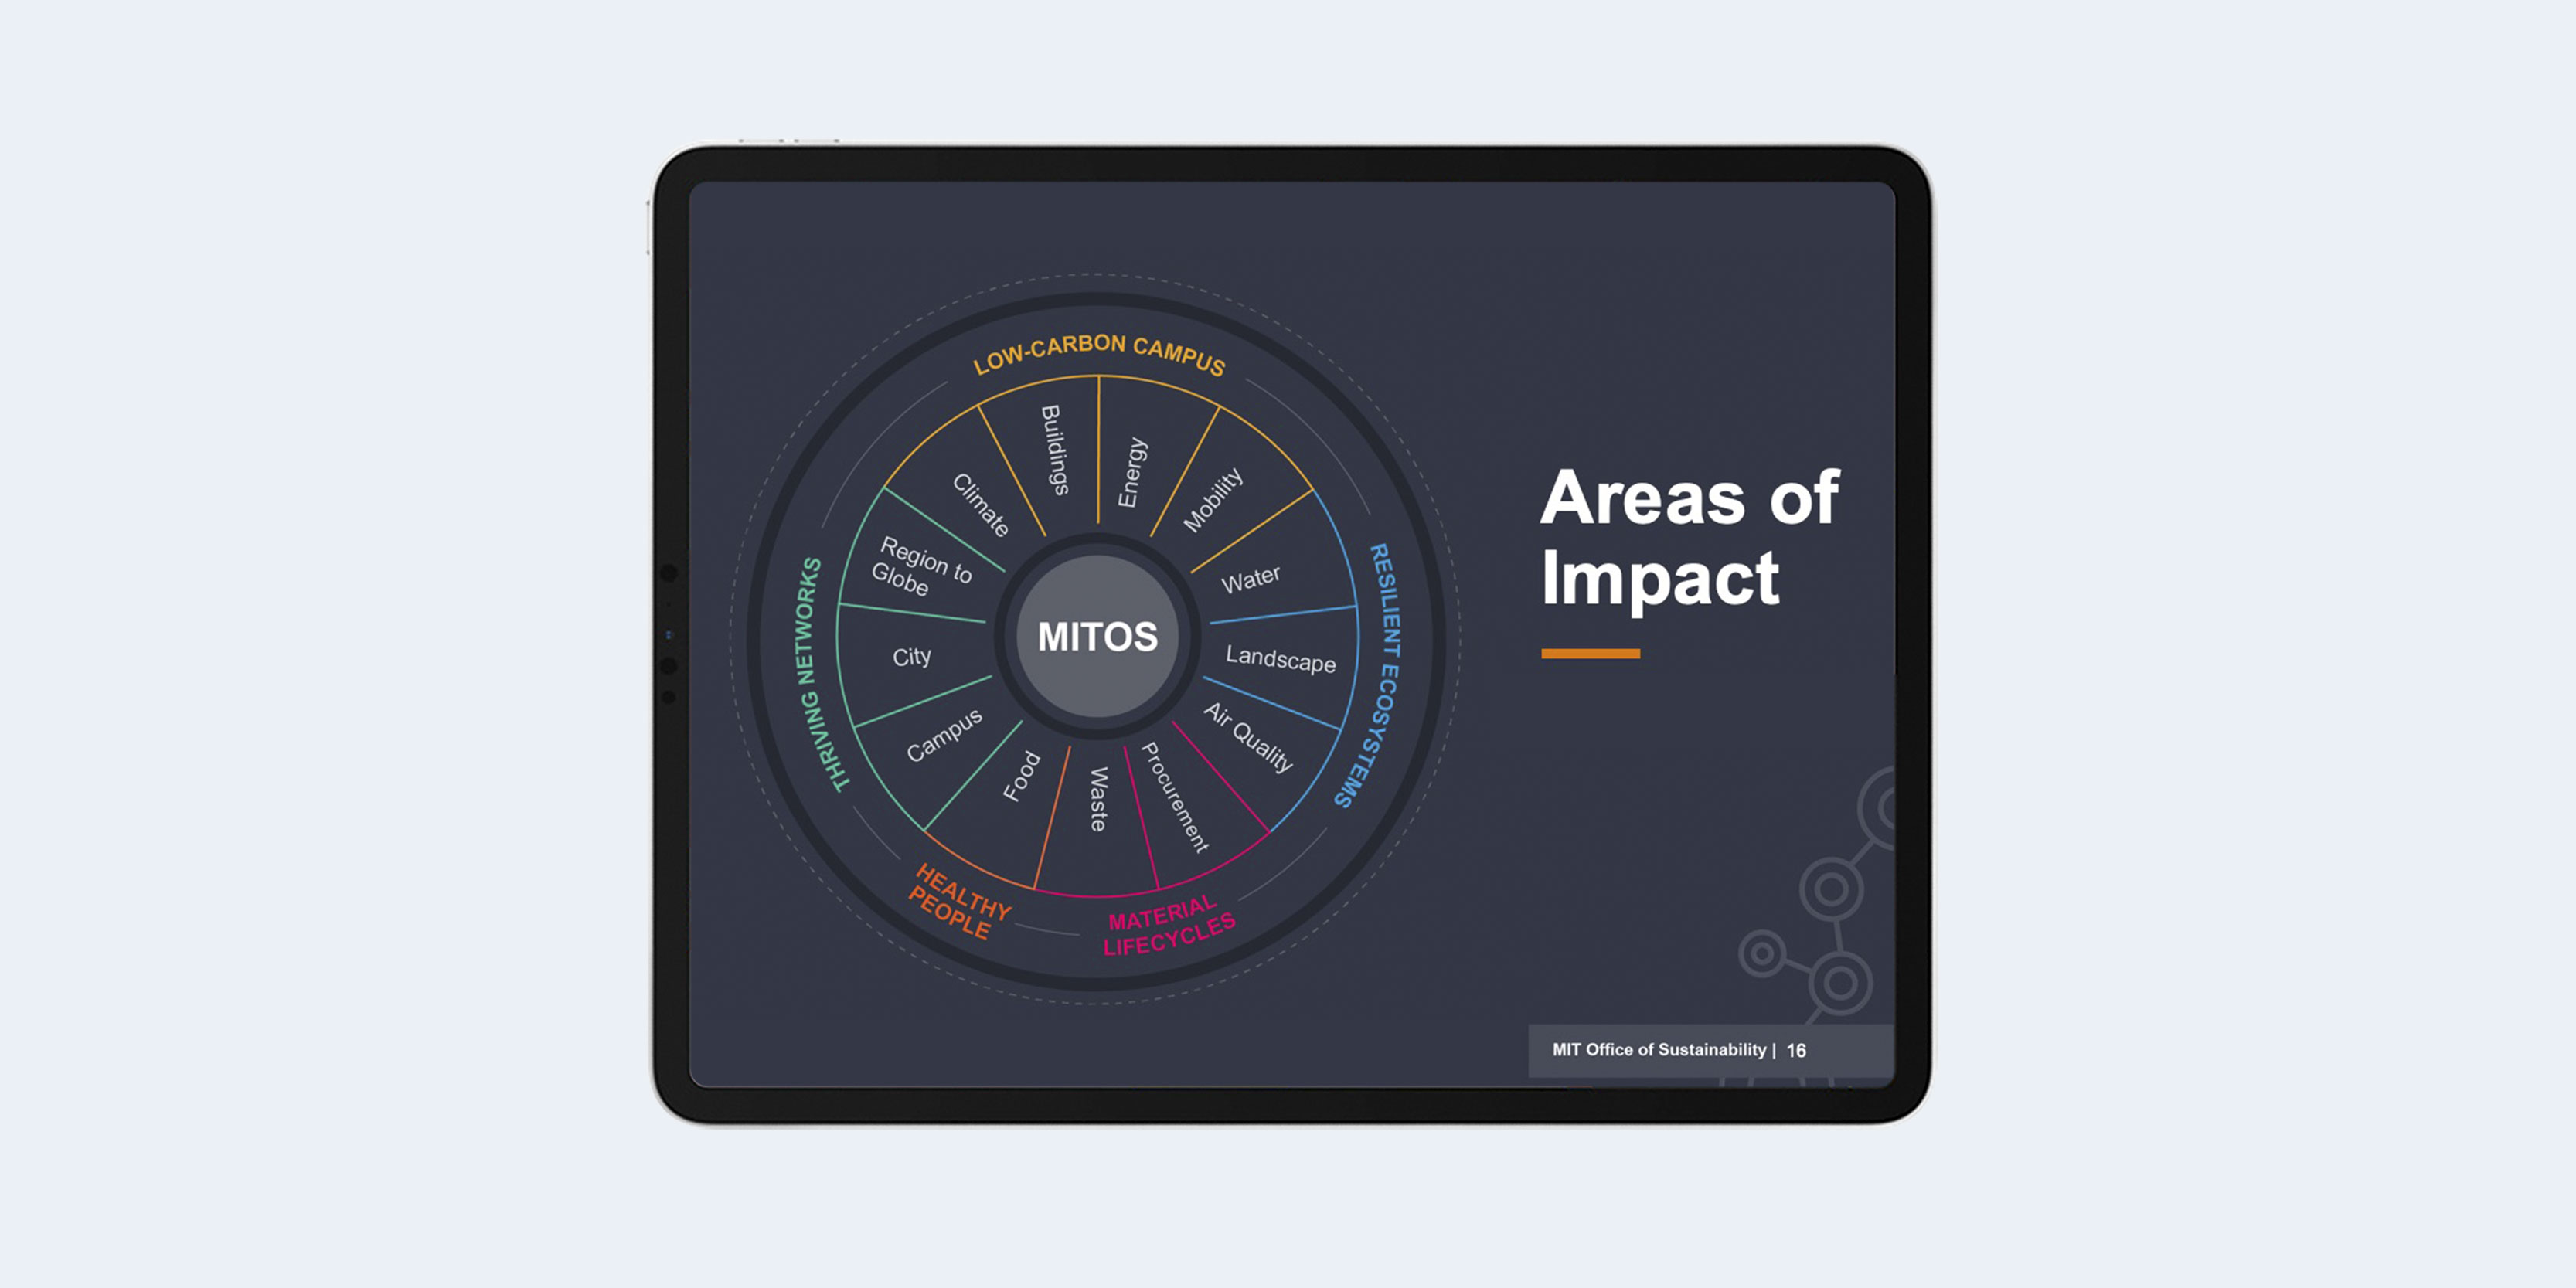 Areas of Impact infographic